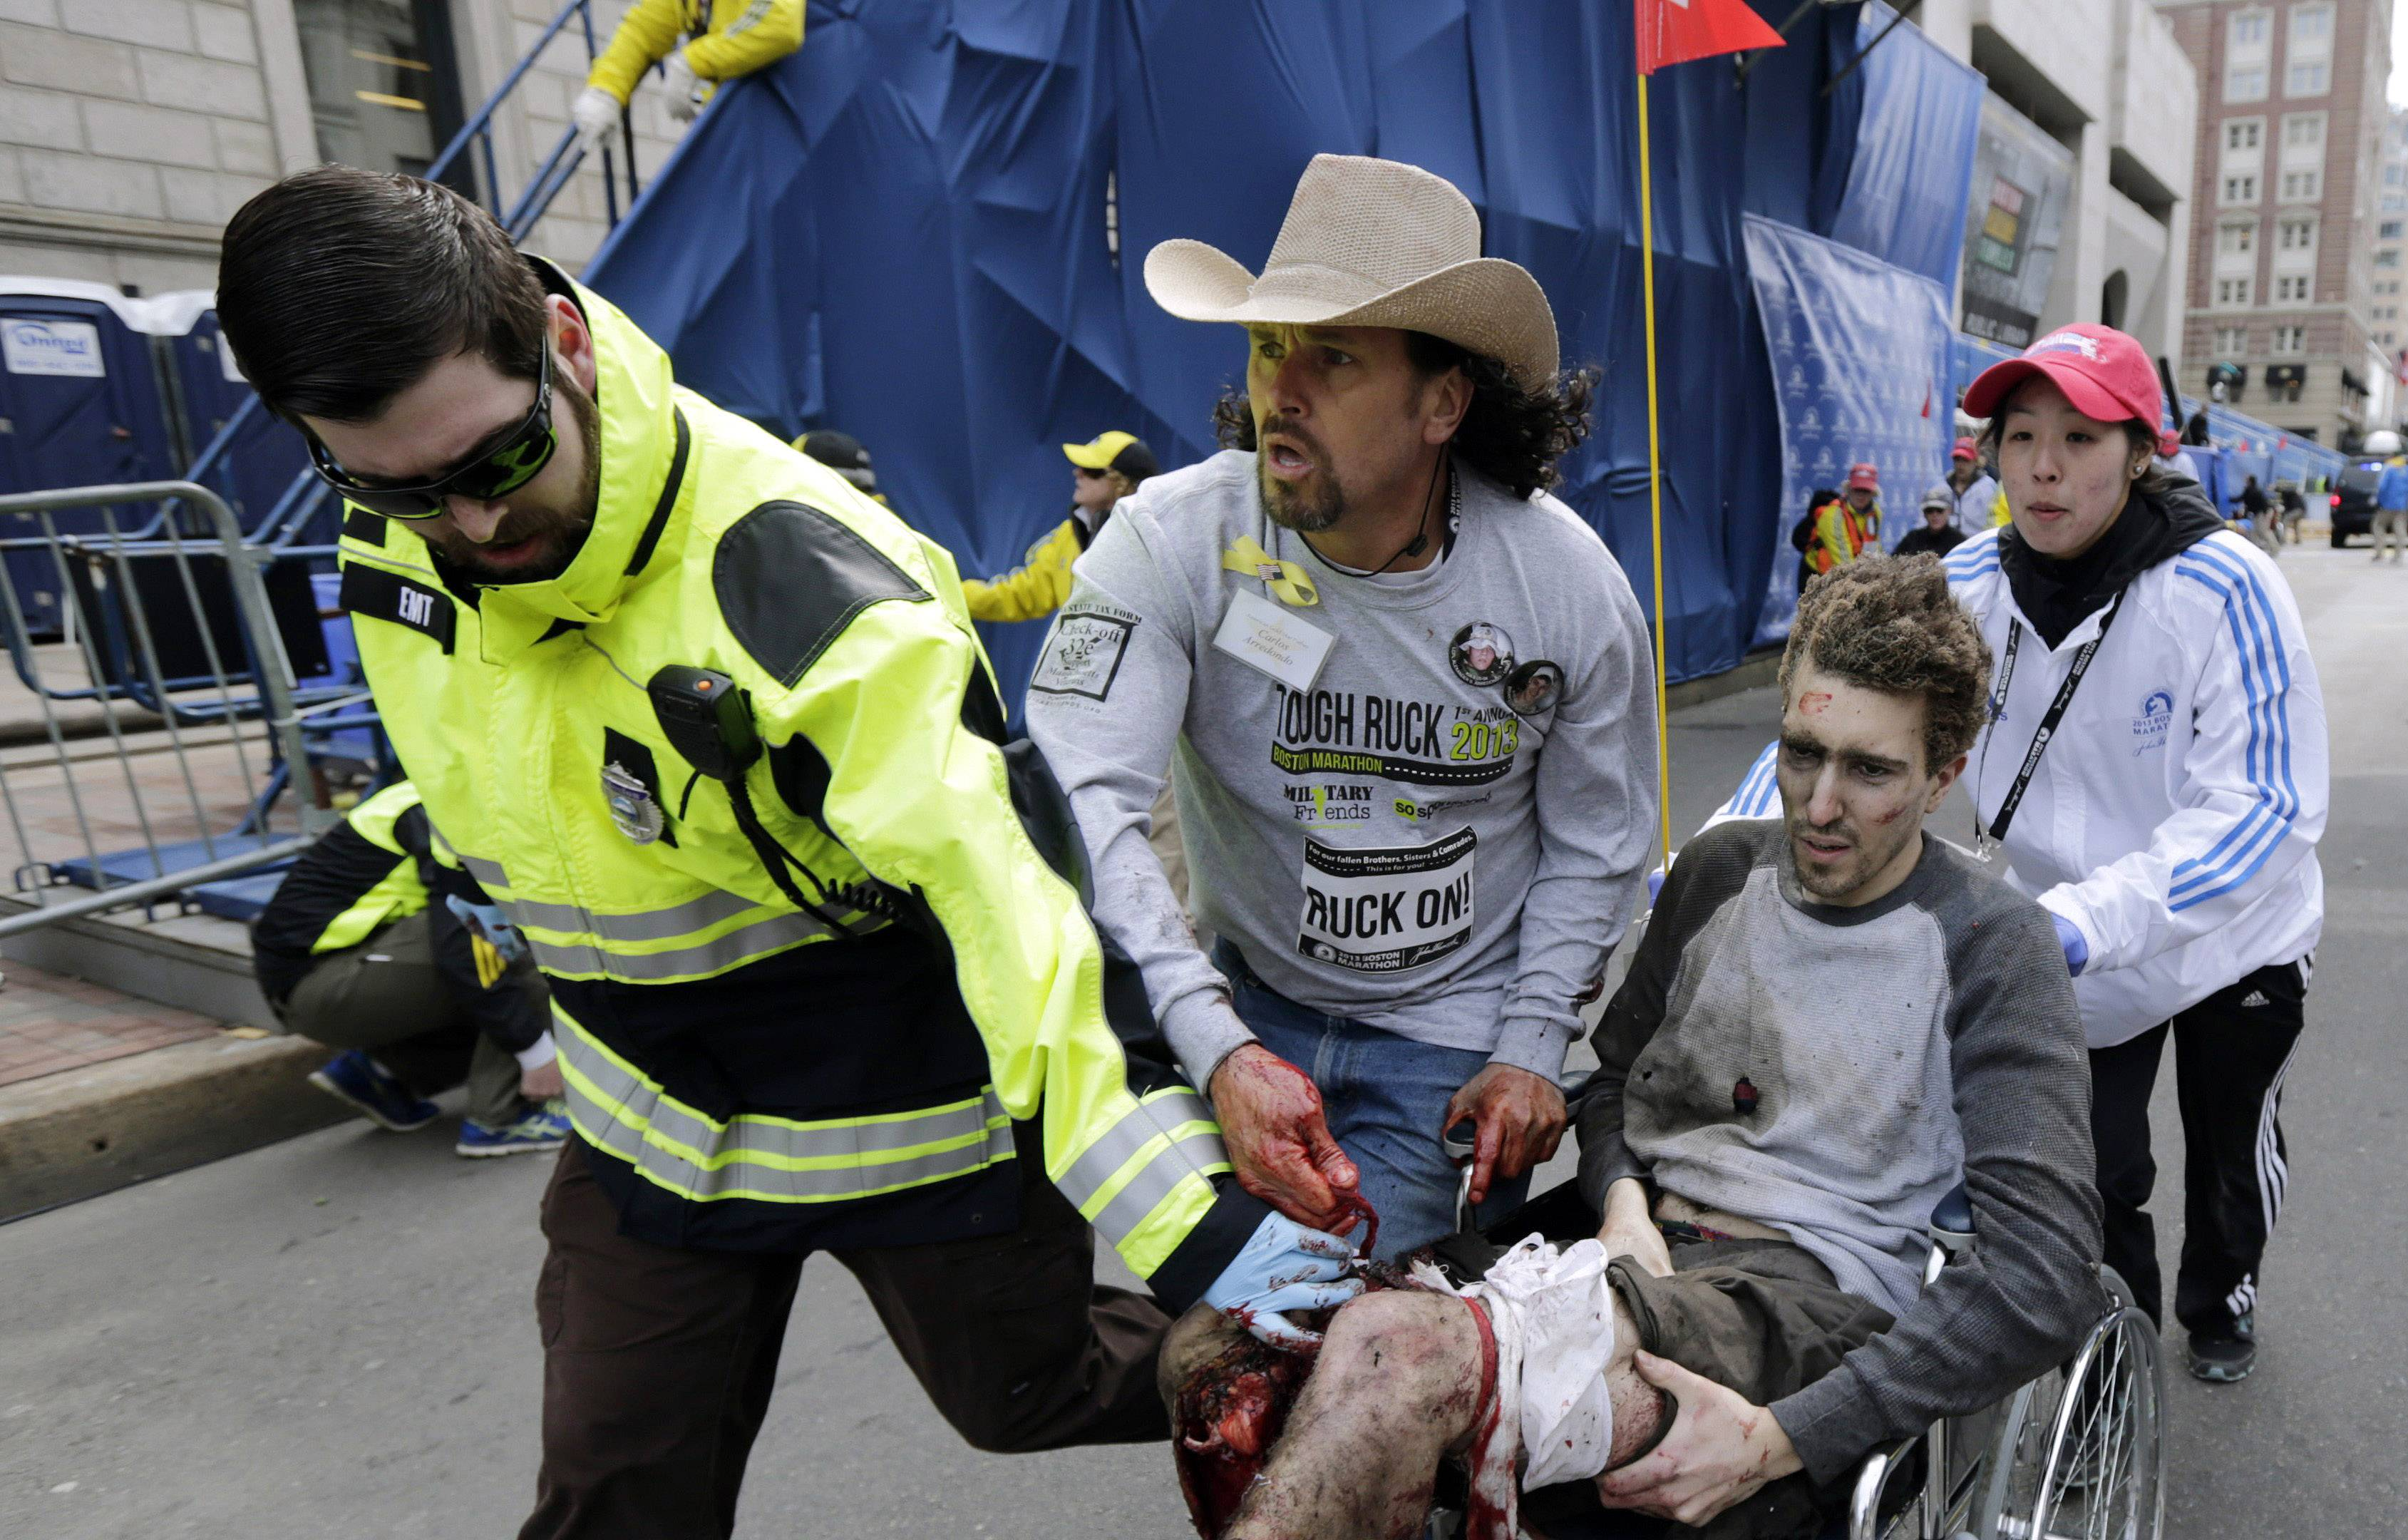 On April 15, 2013, an emergency responder and volunteers, including Carlos Arredondo in the cowboy hat, push Jeff Bauman in a wheelchair after he was injured in an explosion near the finish line of the Boston Marathon in Boston.